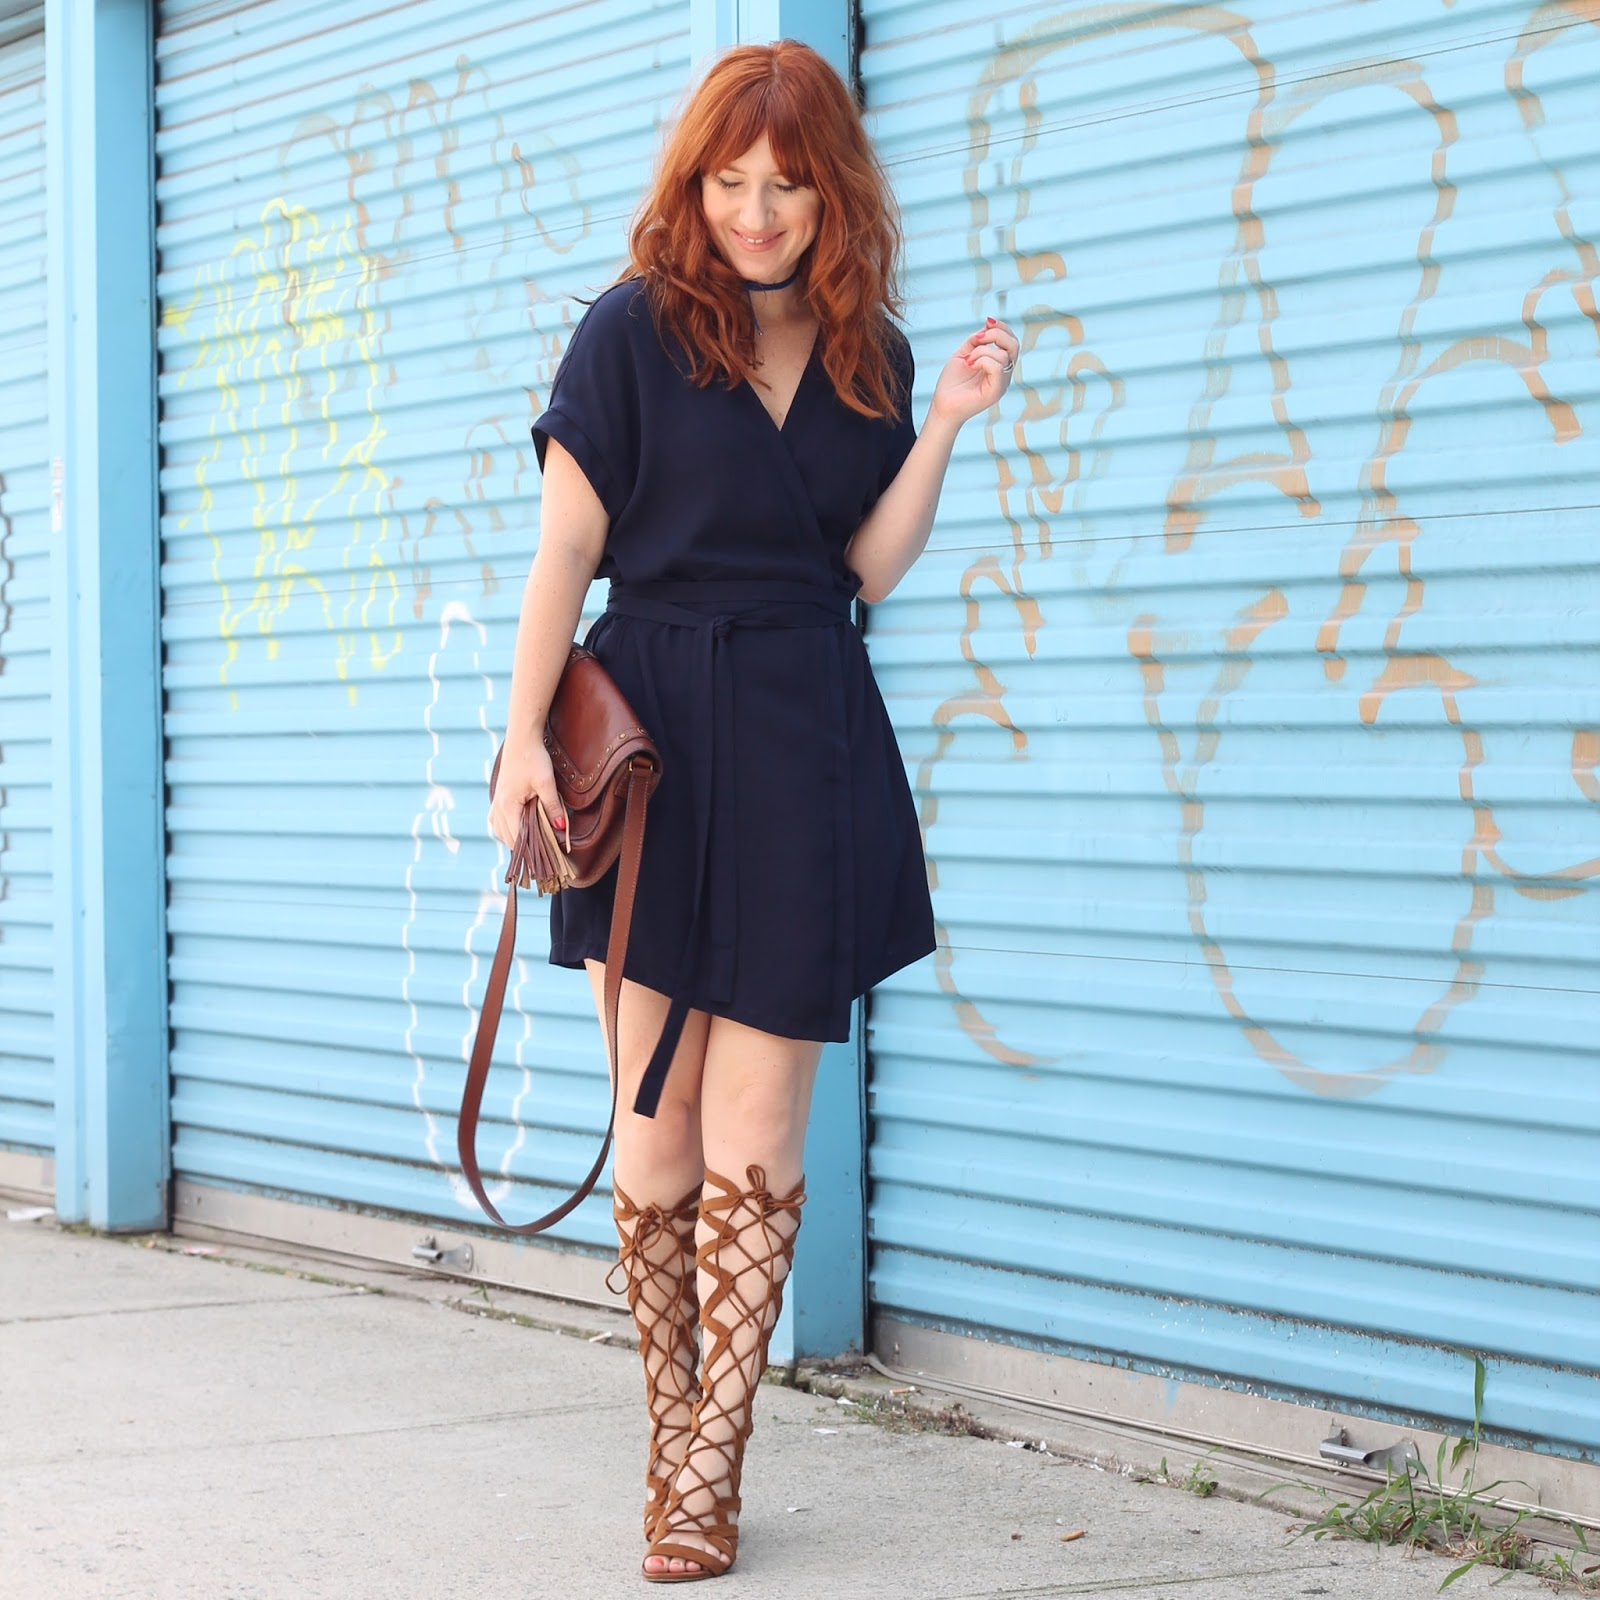 how to wear a wrap dress, summer outfit ideas, how to wear gladiator sandals, vacation outfit ideas, simple outfits